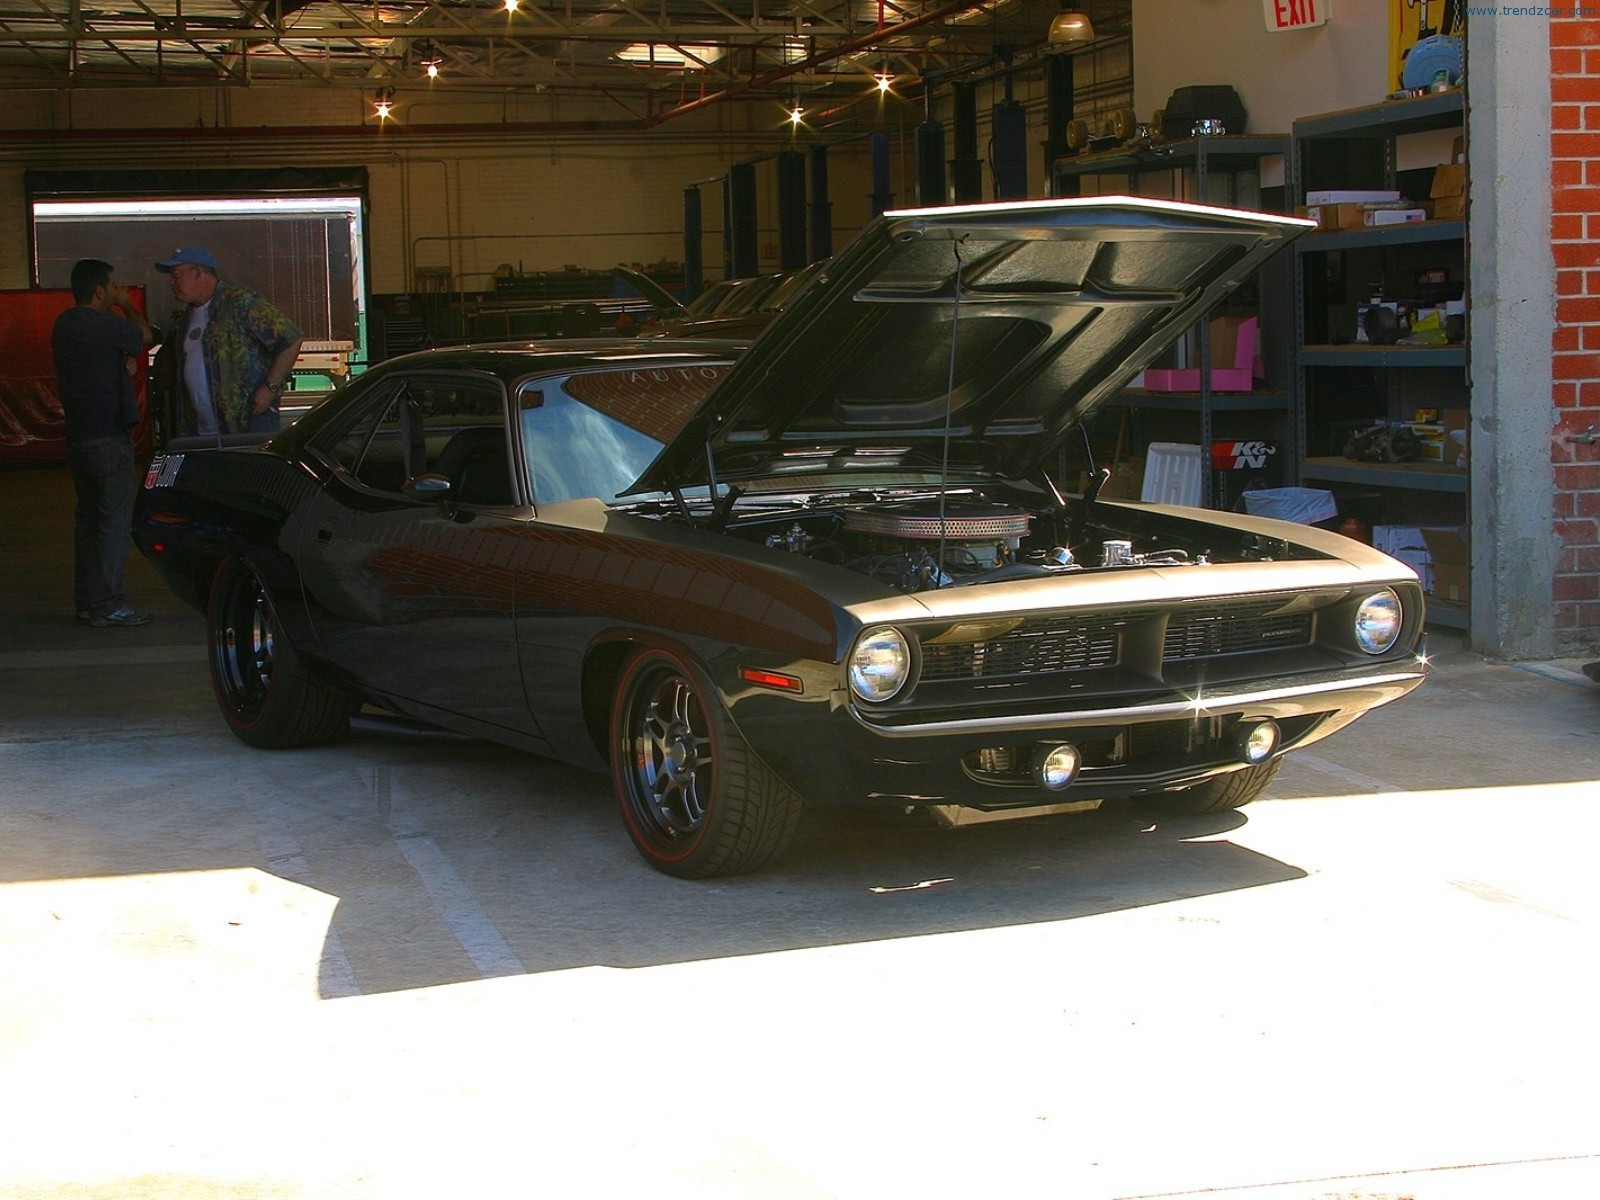 1970 Plymouth Cuda Front Angle Fast Furious 6 Car Muscle